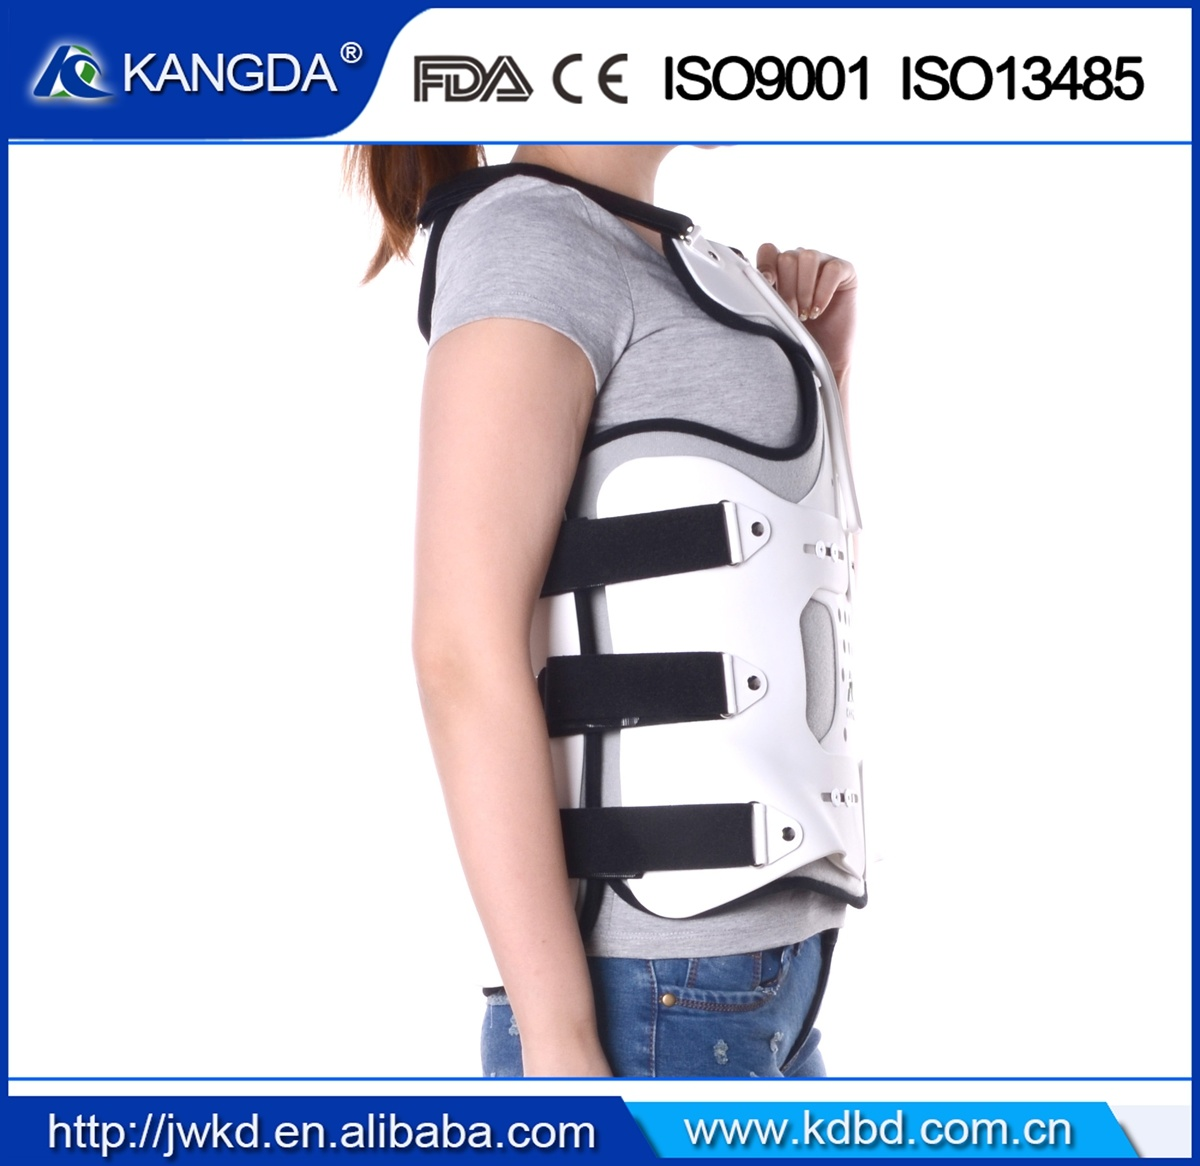 2017 New Postoperation Lumbar Spine Upper Bace Waist Chest Support Brace